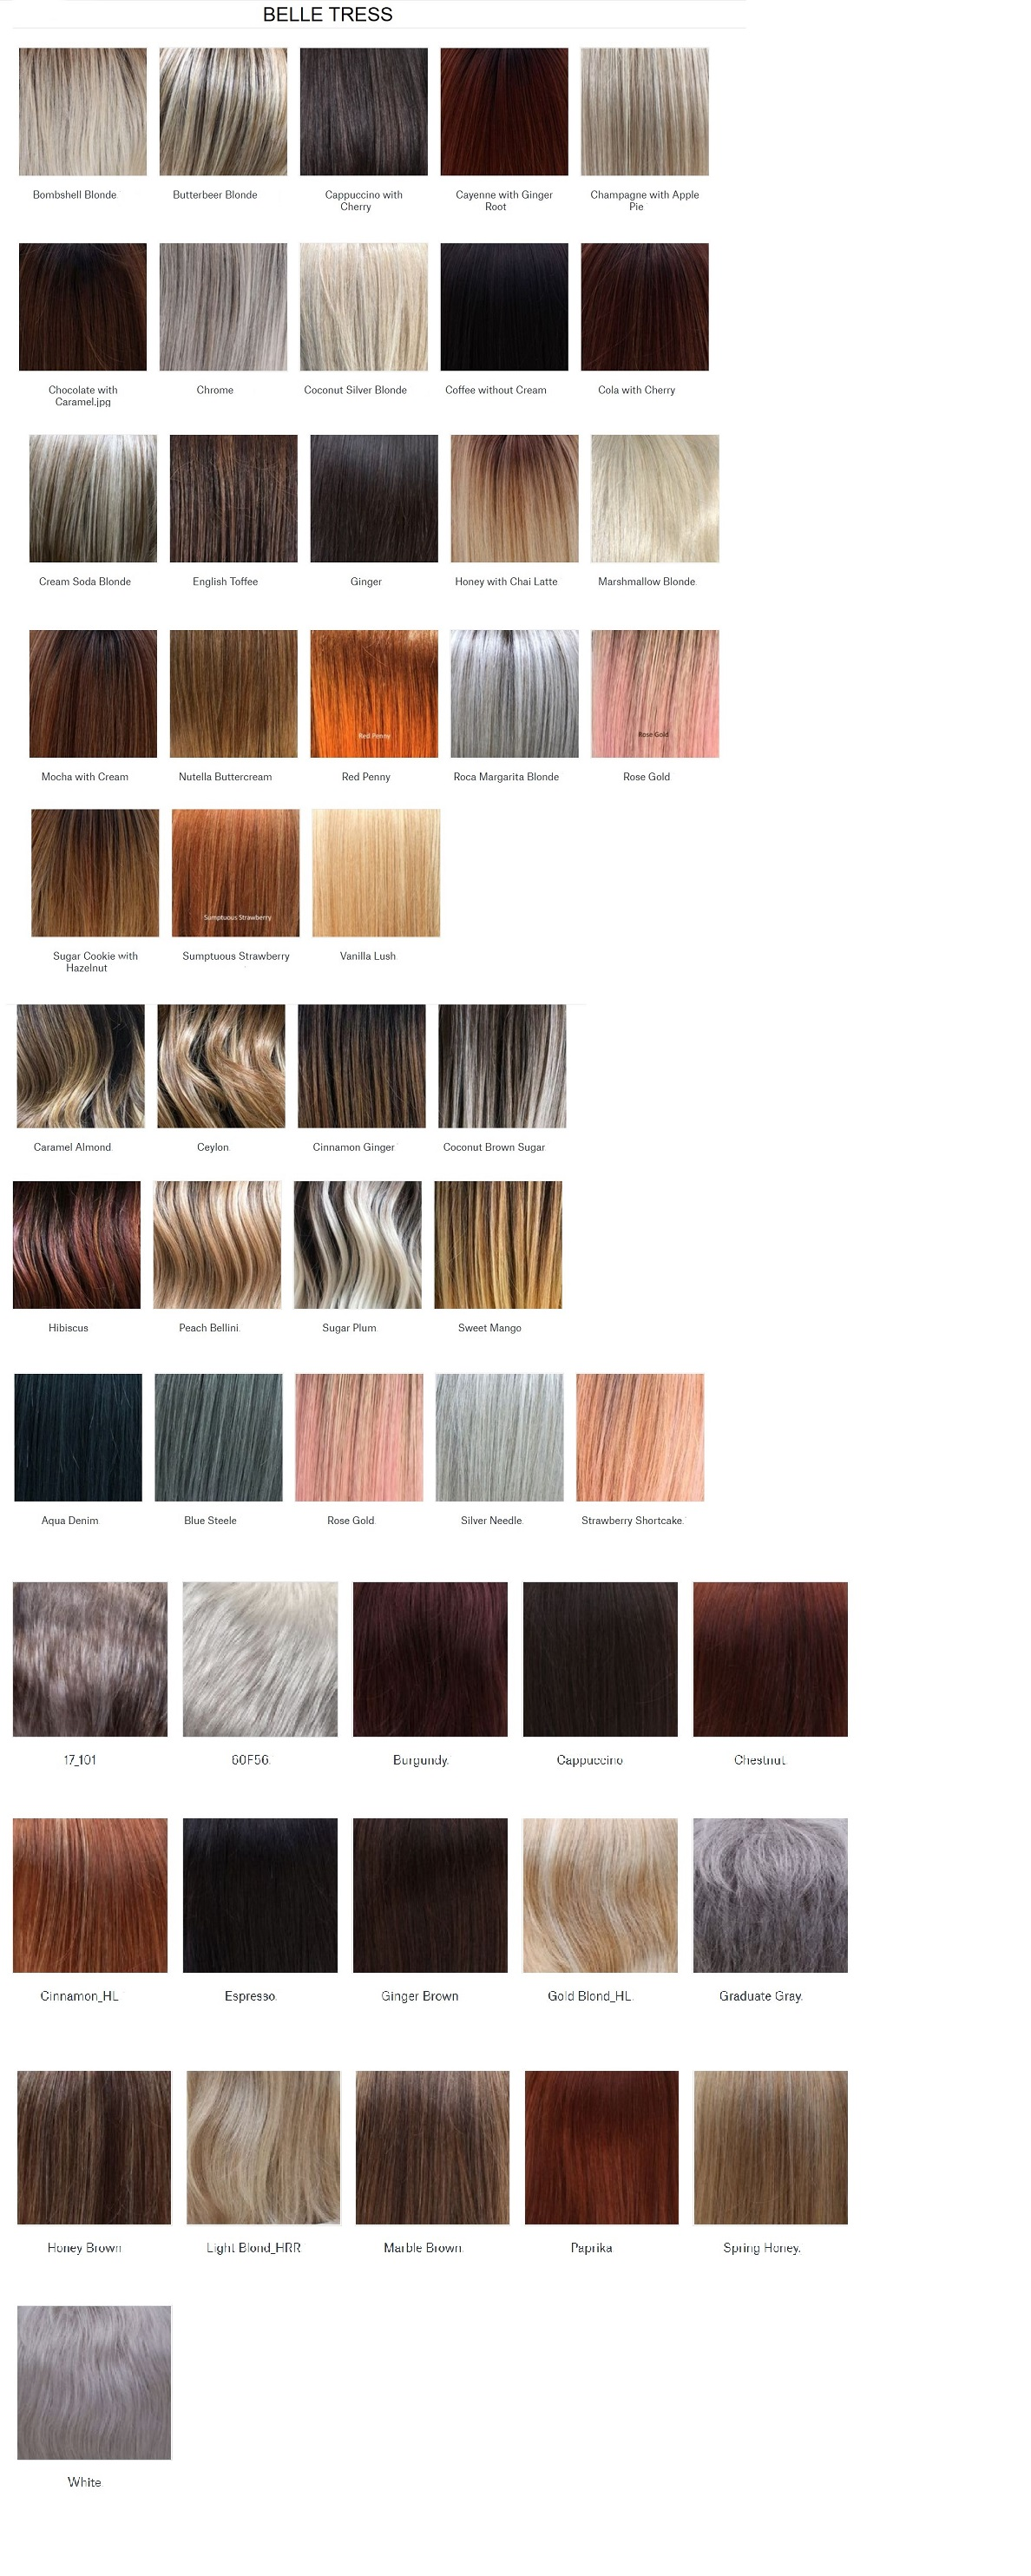 belltress-color-chart.jpg